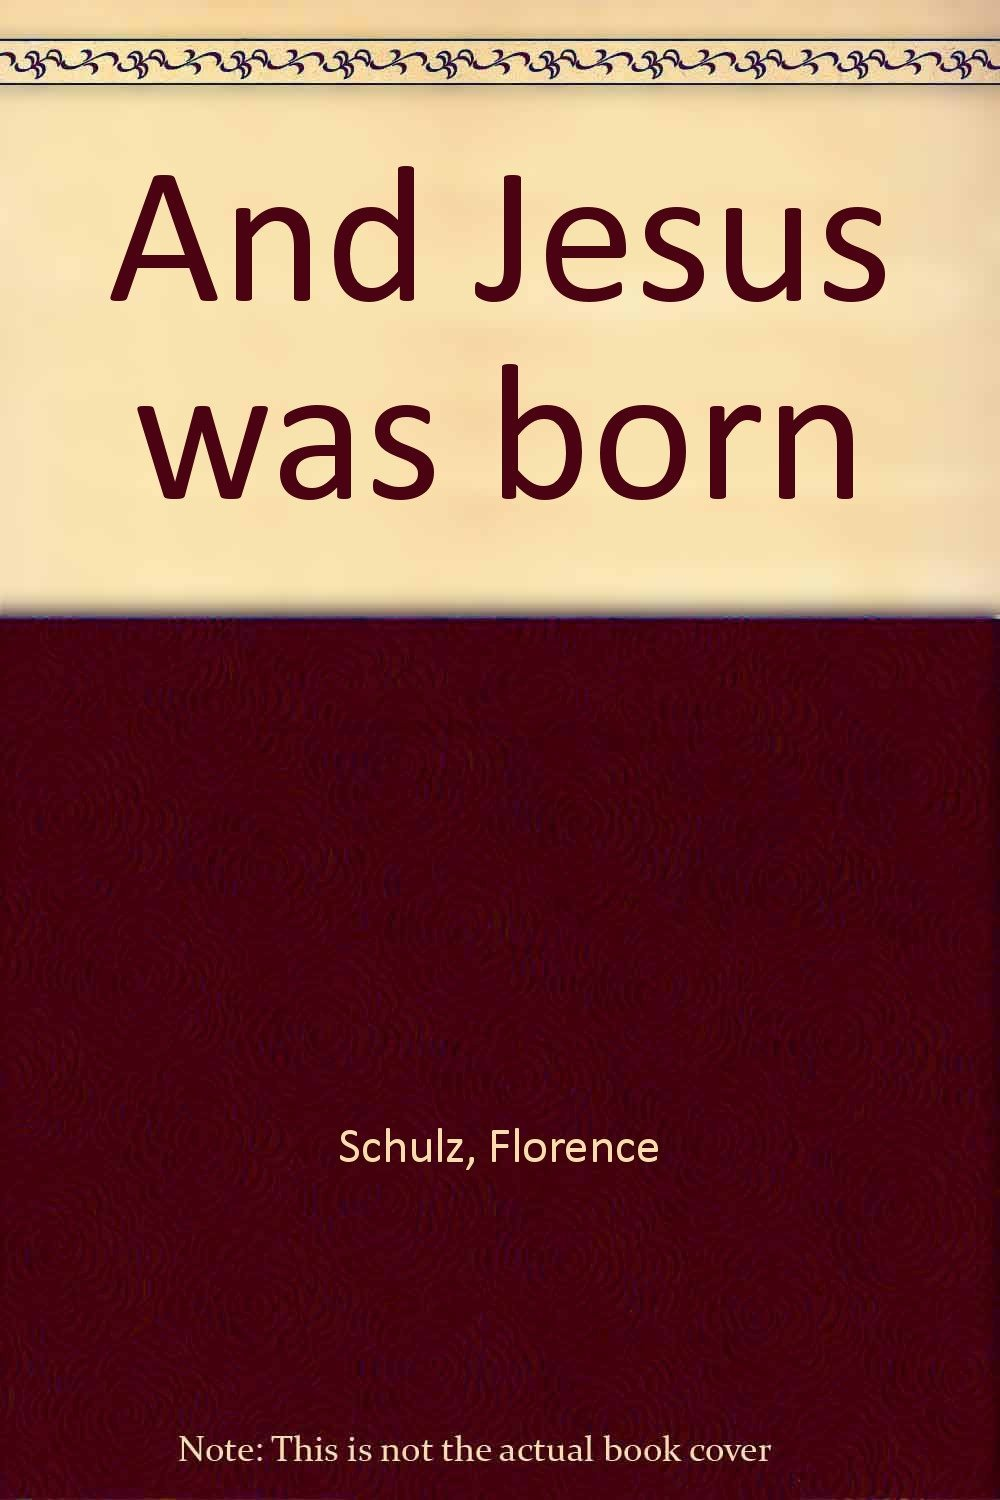 And Jesus was born by Schulz, Florence